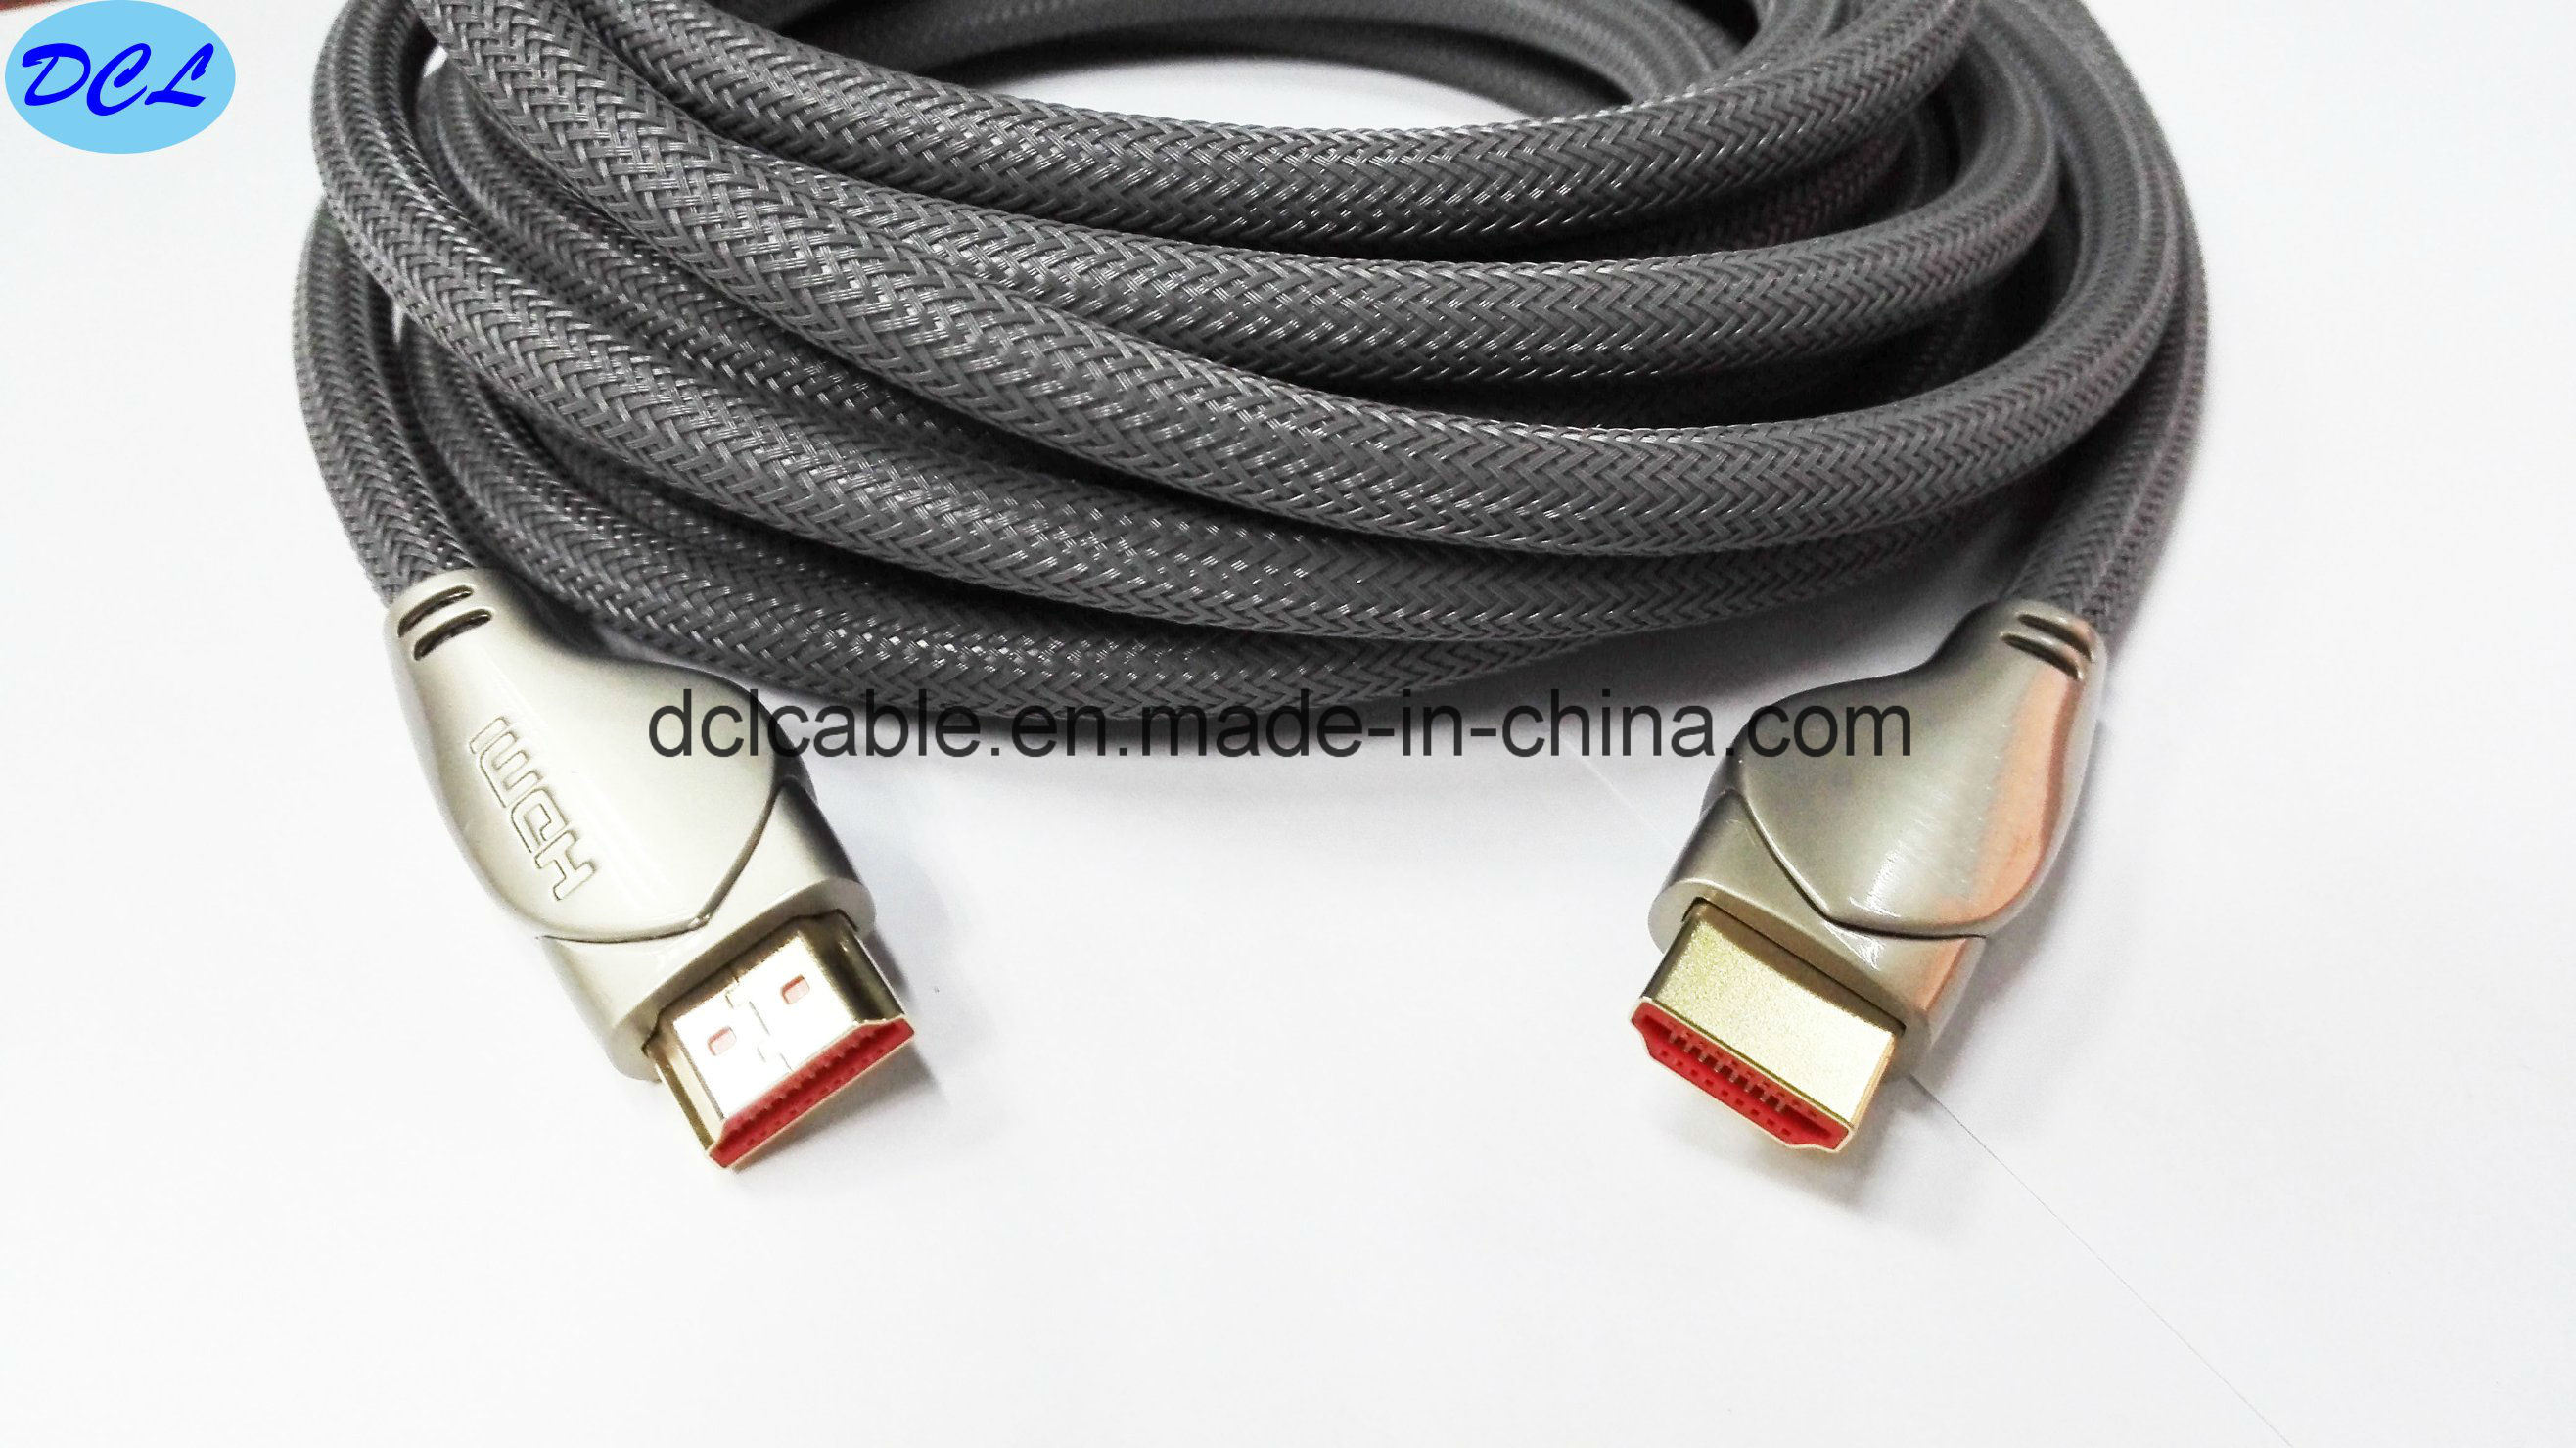 Hi-Q Netting HDMI Cable 1.4/2.0V Support 3D/1080P/4k